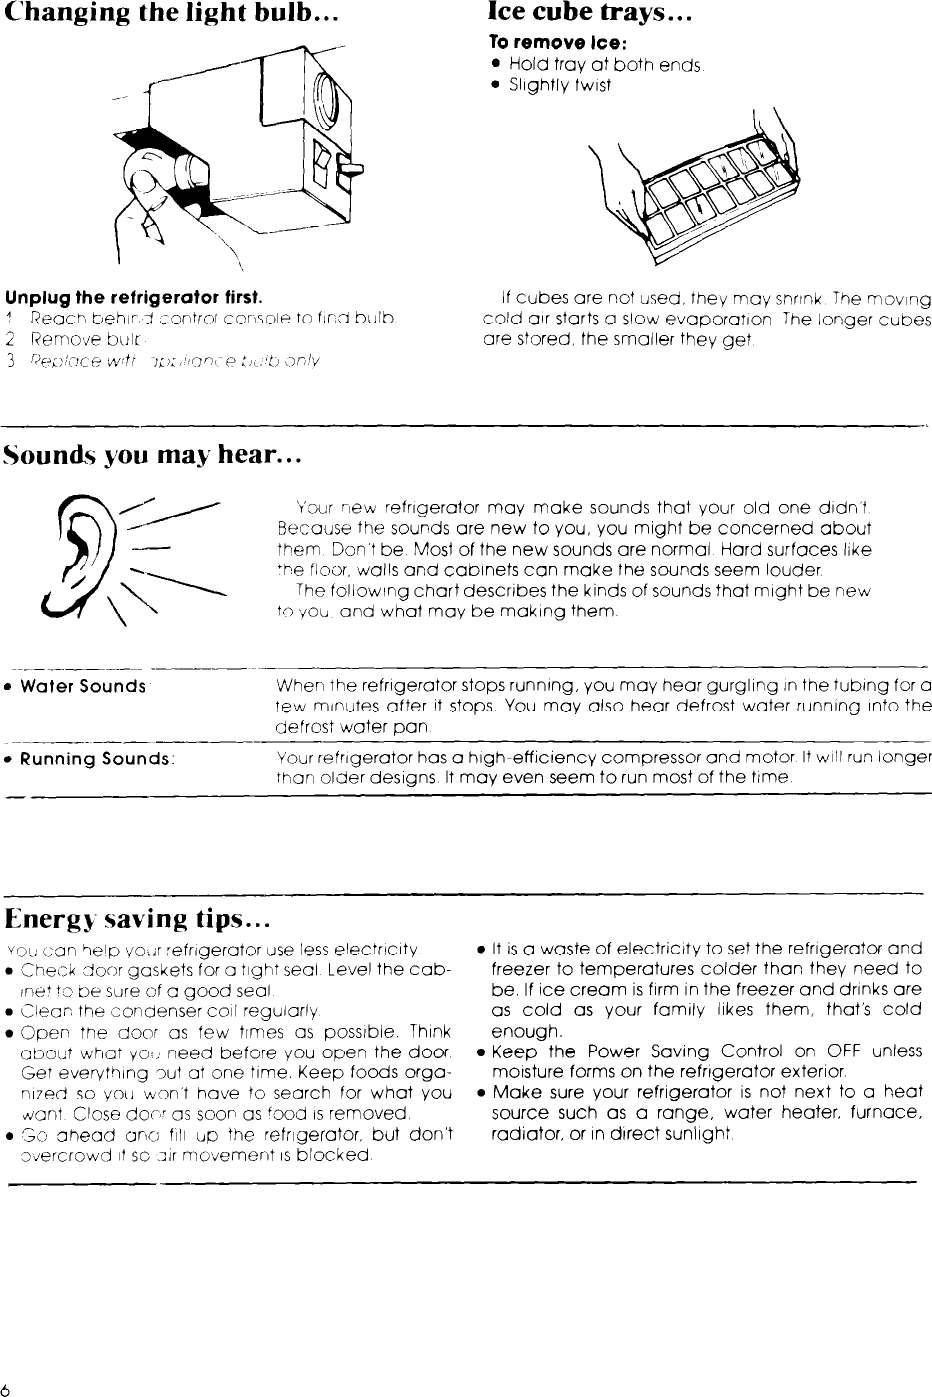 Whirlpool Et12Dc Users Manual Unknown